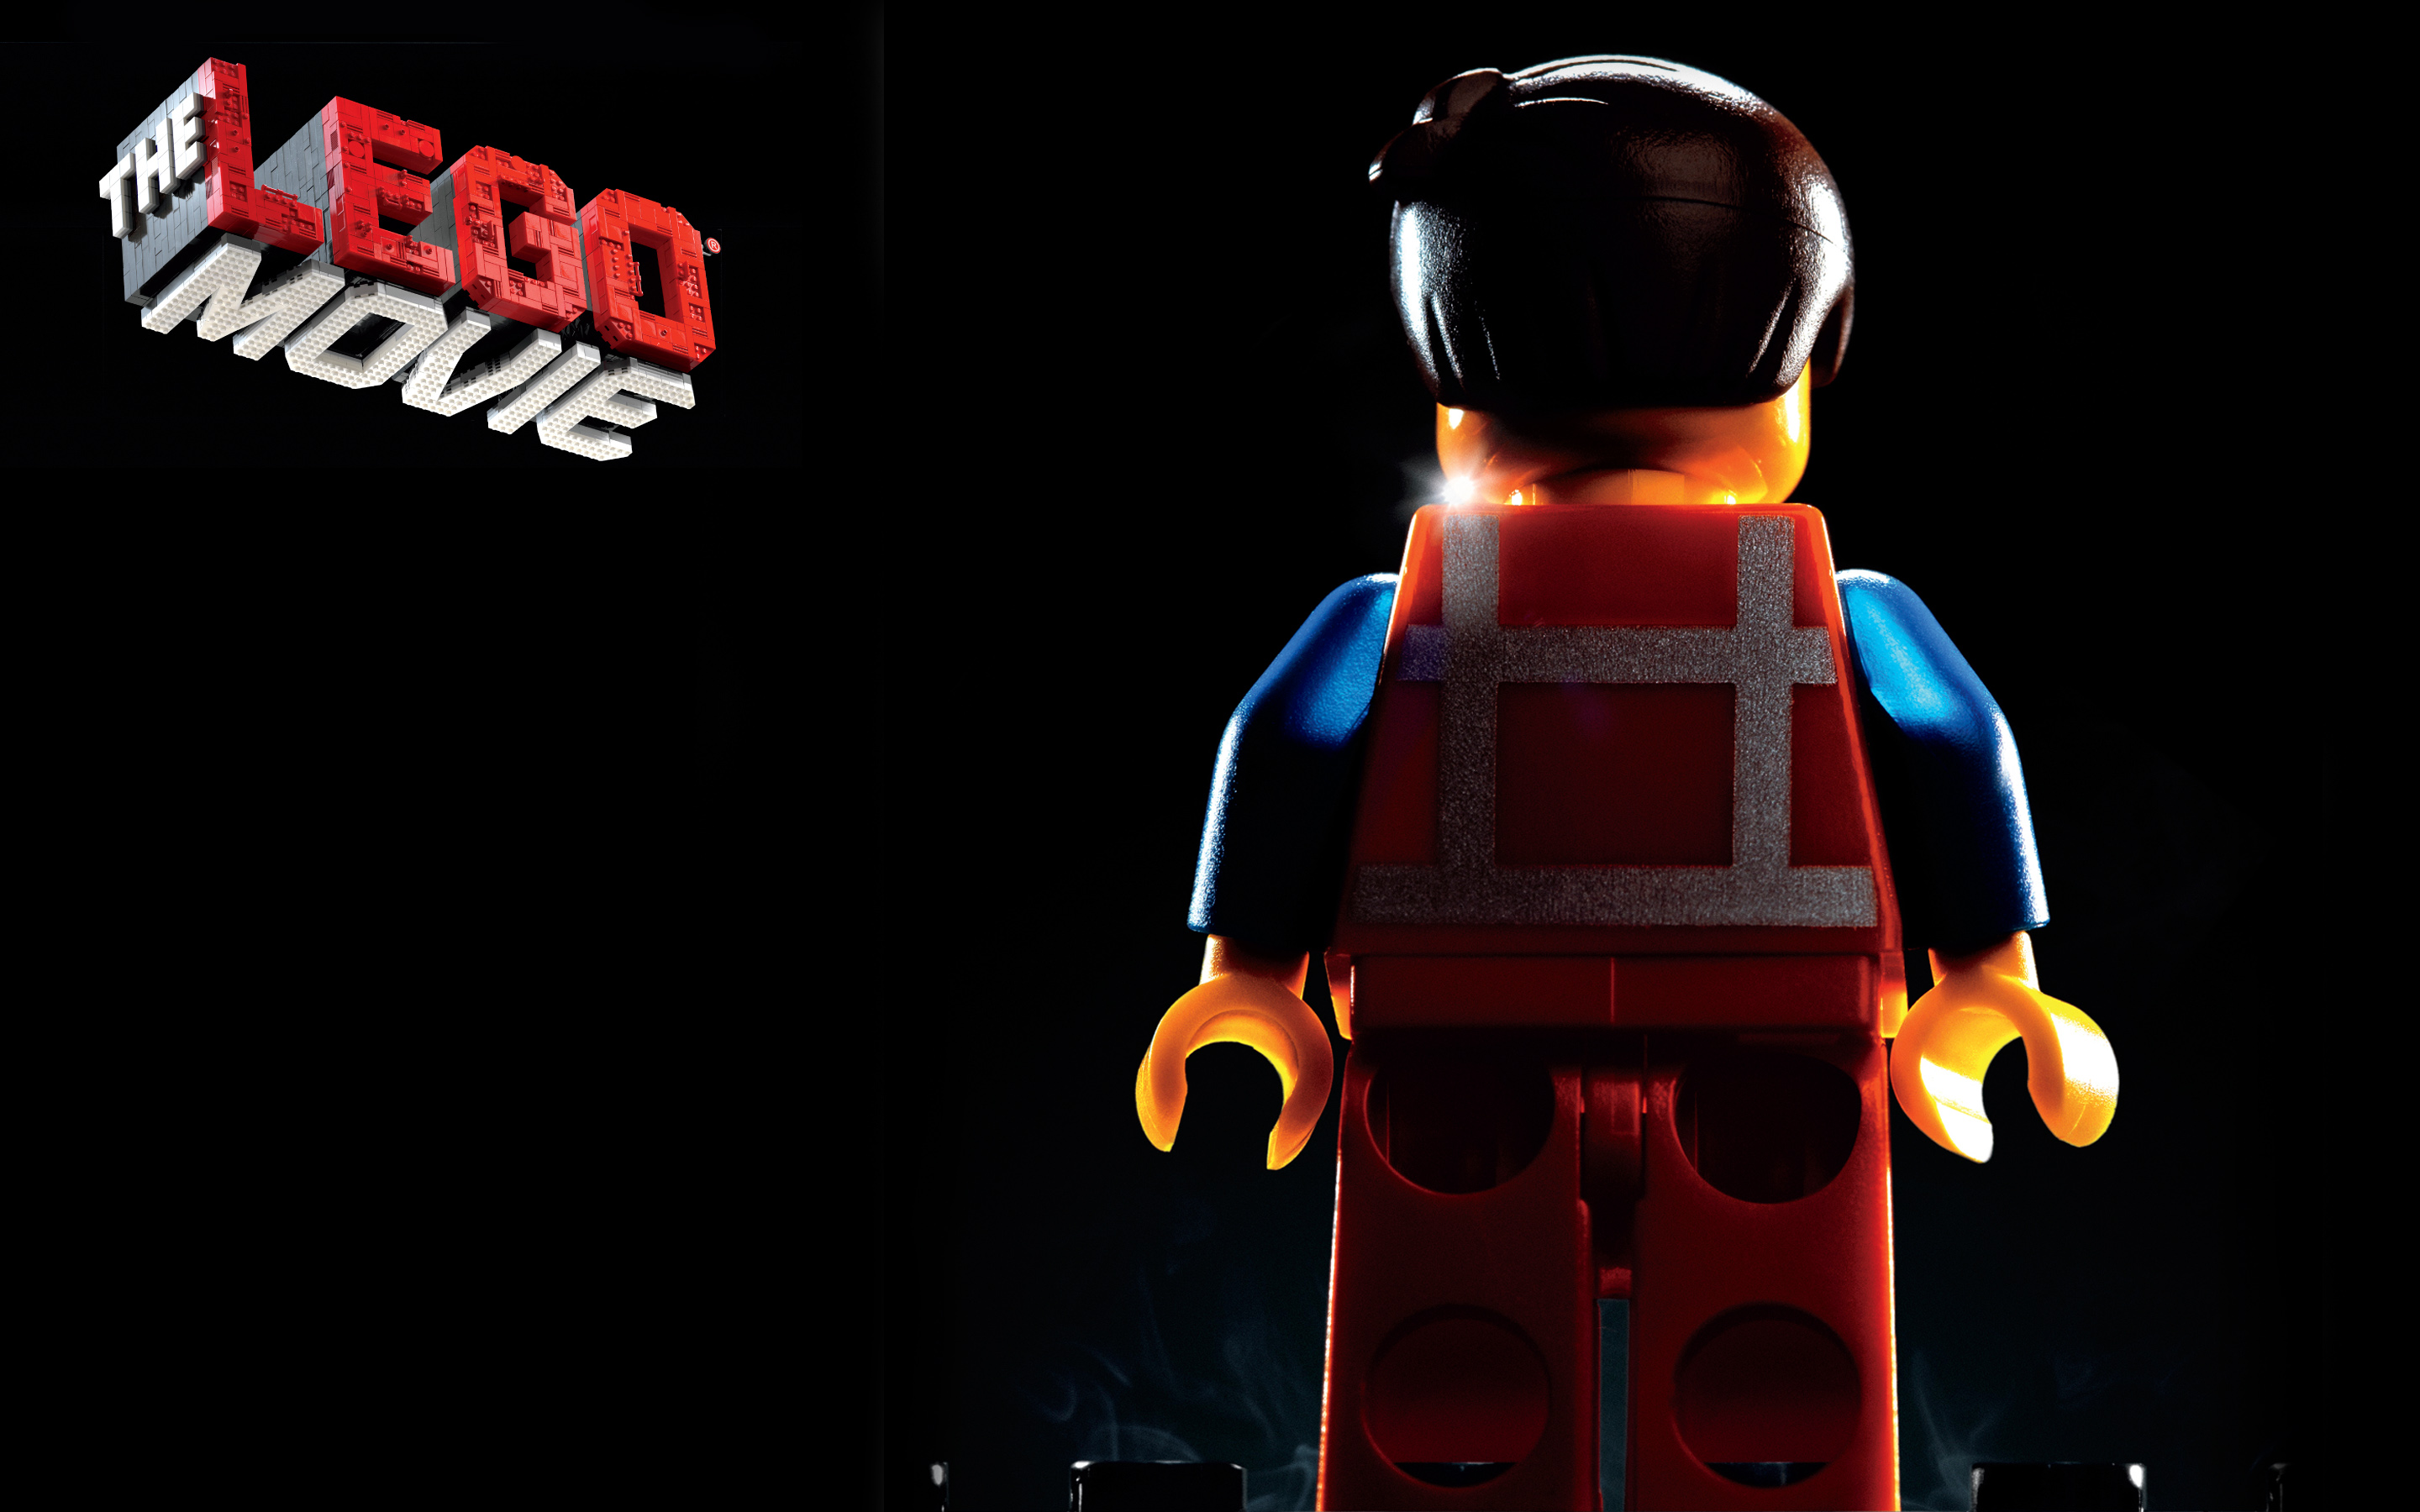 The Lego Movie Hd Wallpaper Background Image 2880x1800 Id